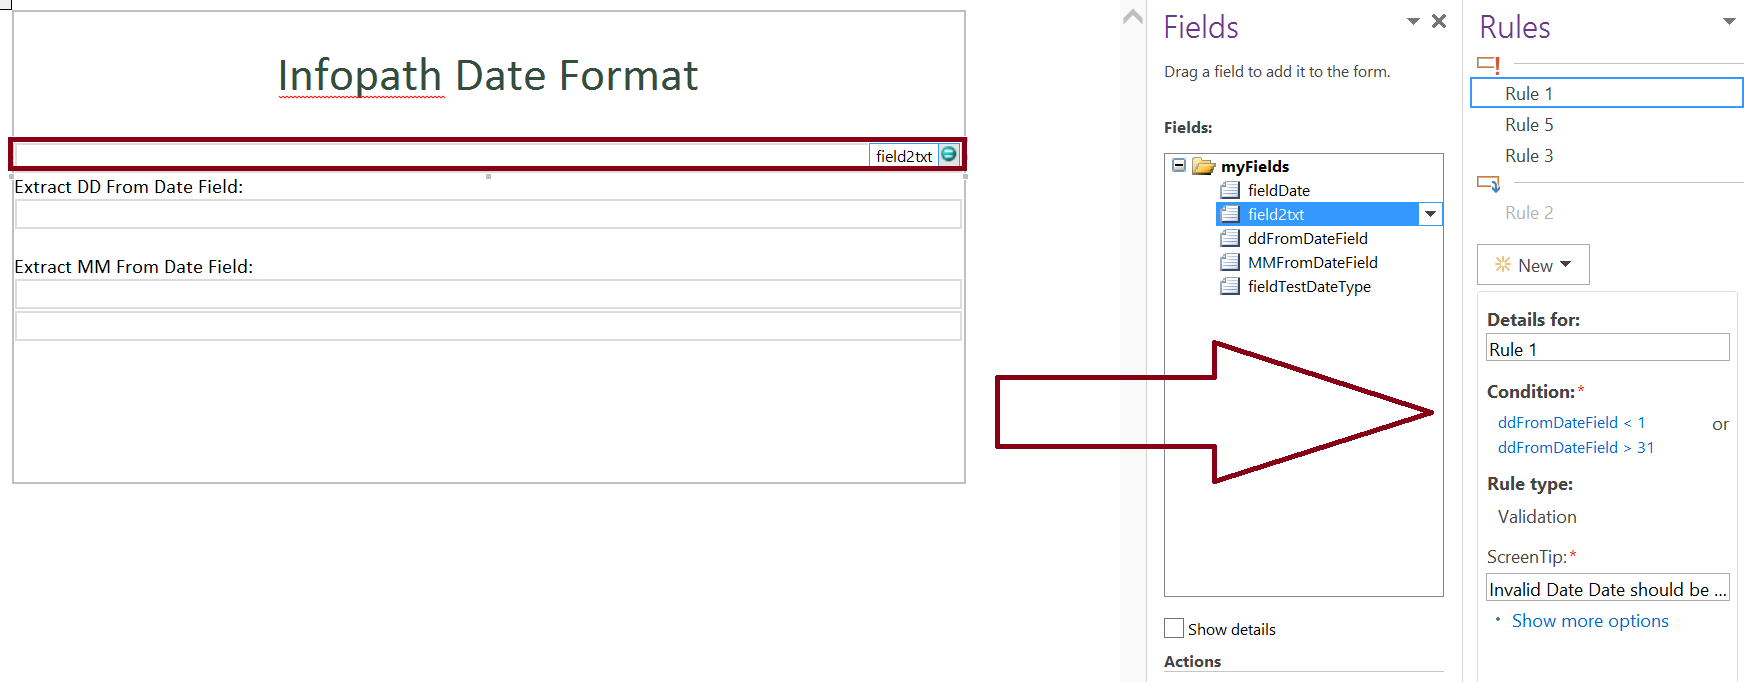 Date format validation in infopath form - day part